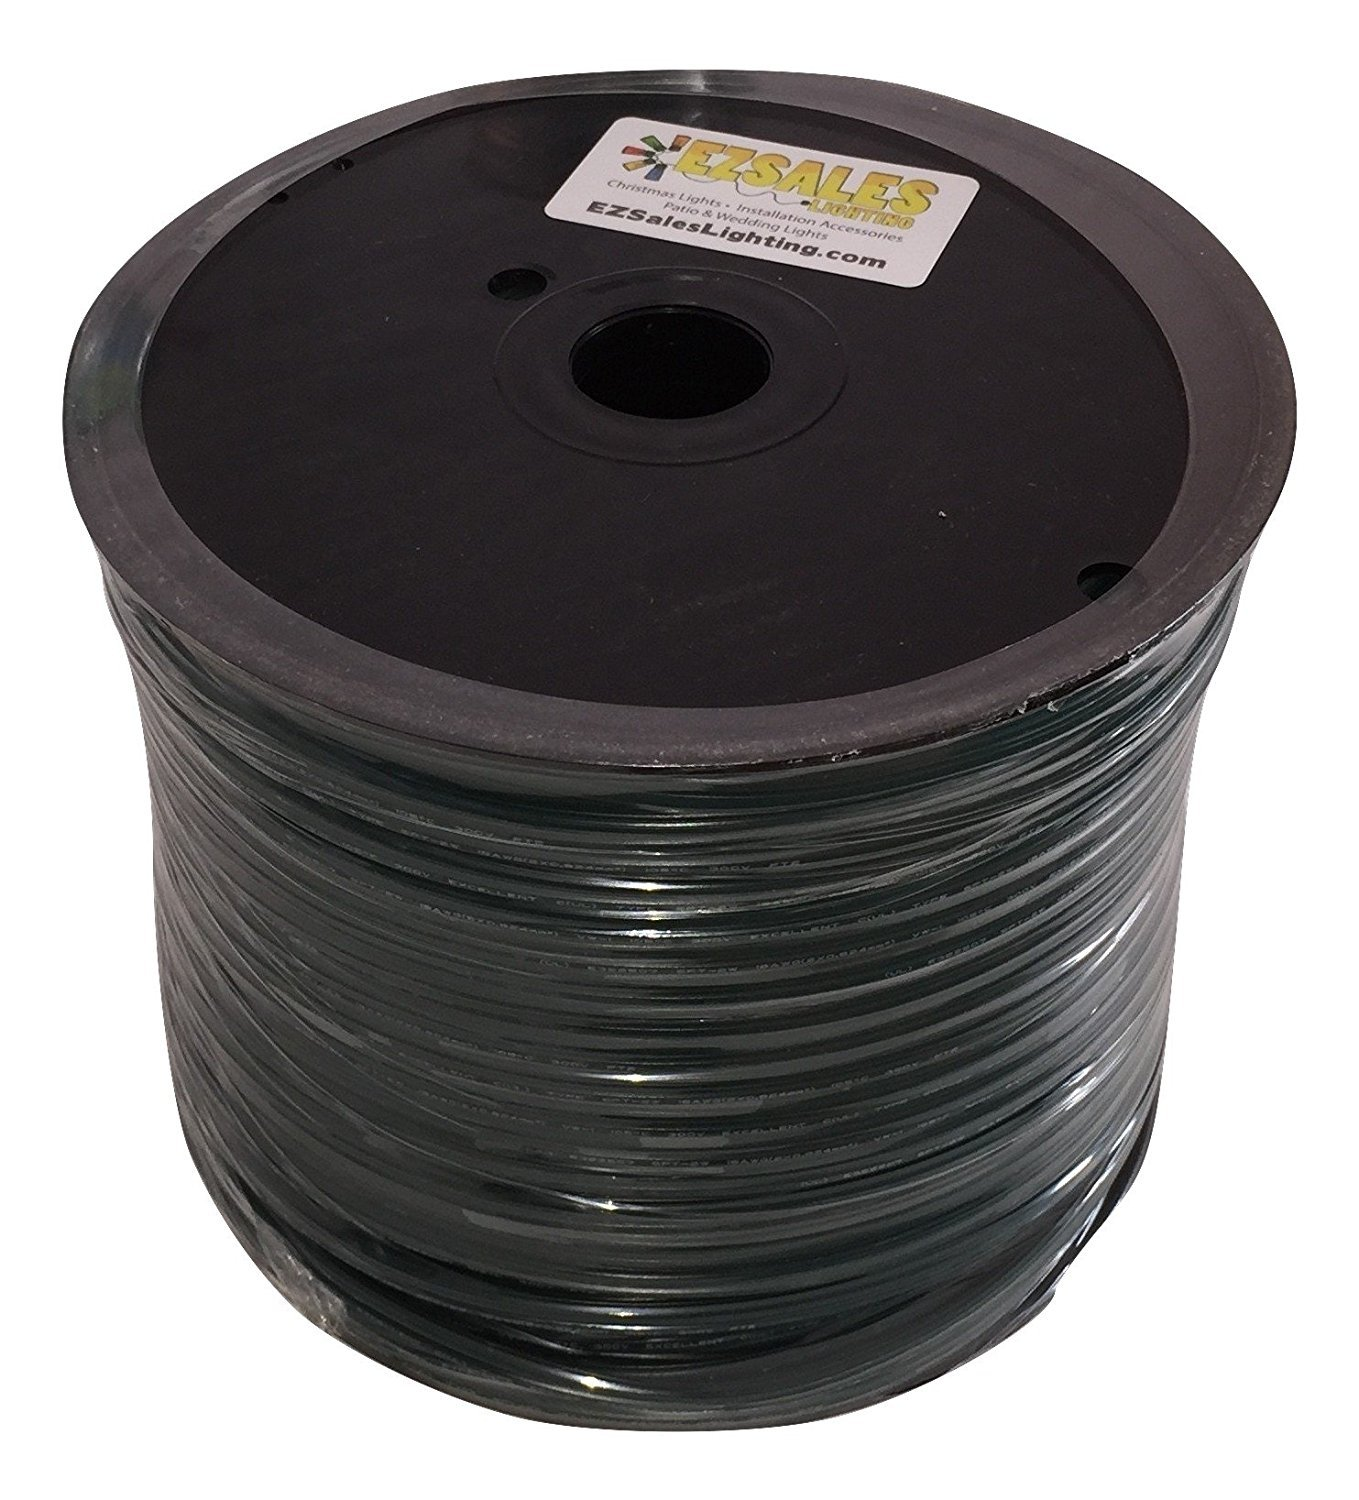 SPT-2 Green Wire 500\' Spool by EZLS - Electrical Wires - Amazon.com